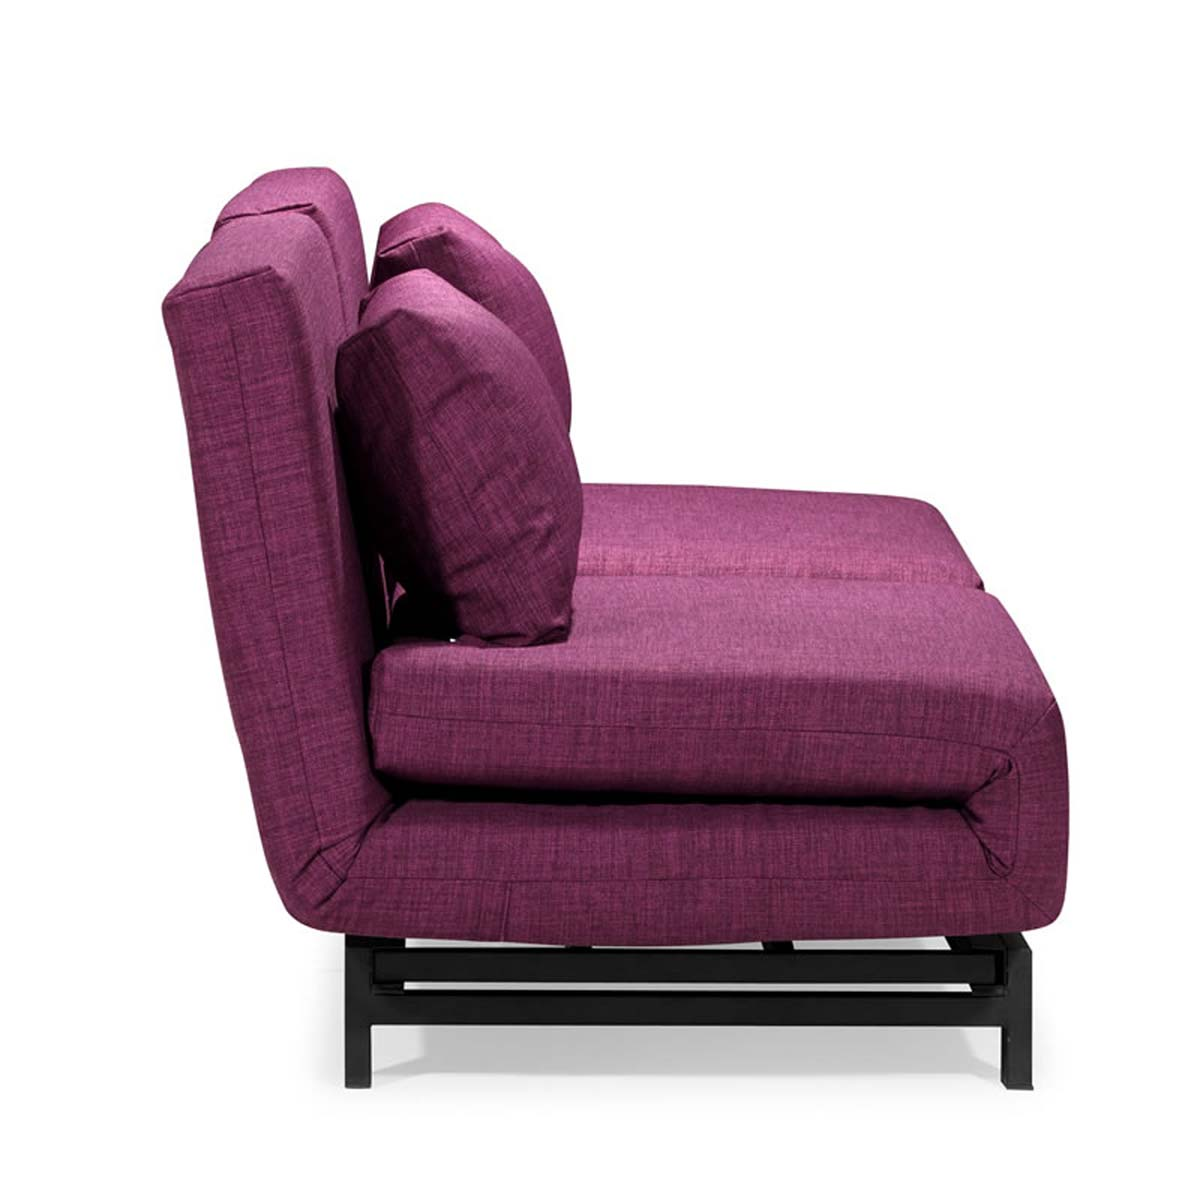 jazz sofa review jackknife bed zuo modern swing lounge purple zm 900061 at